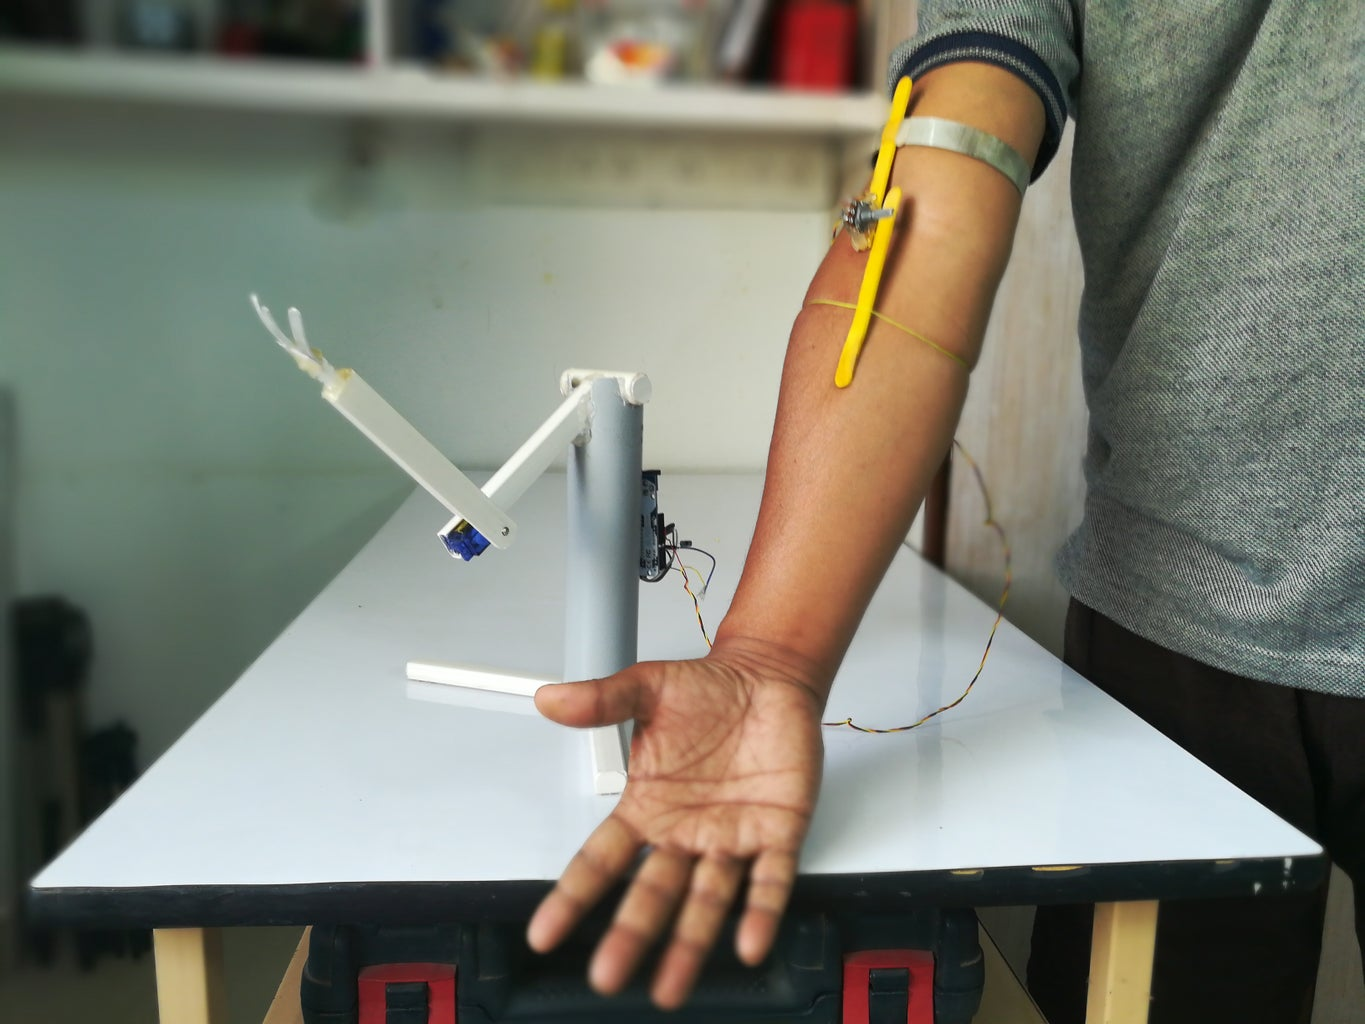 A Simple Robotic Arm Controlled Over Actual Hand Movement